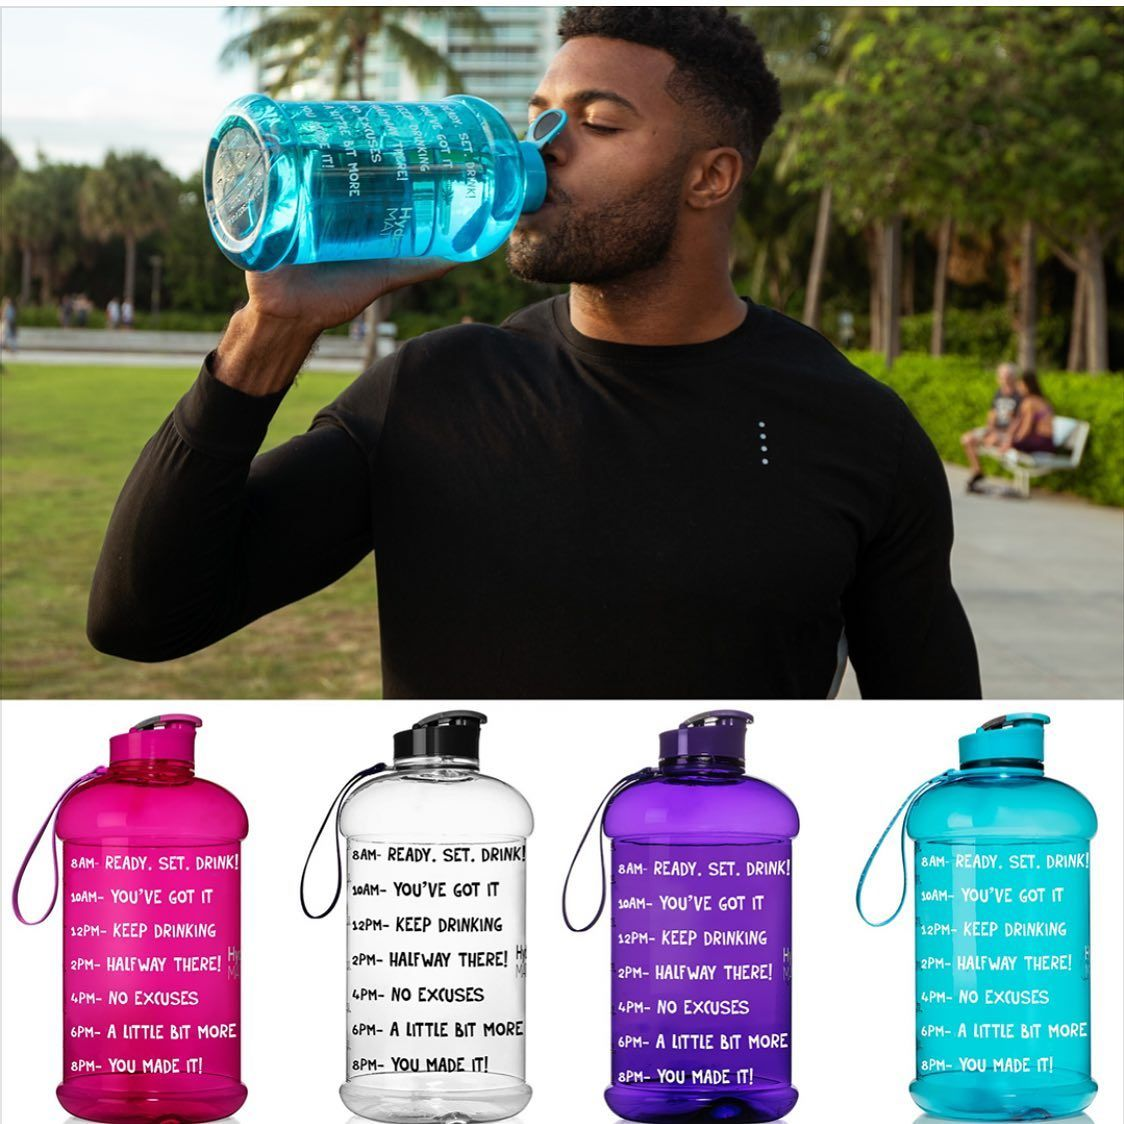 Check Out The Half Gallon Bottle 10 Colors To Choose From Hydromateusa In 2020 Motivational Water Bottle Drinks Water Bottle With Times